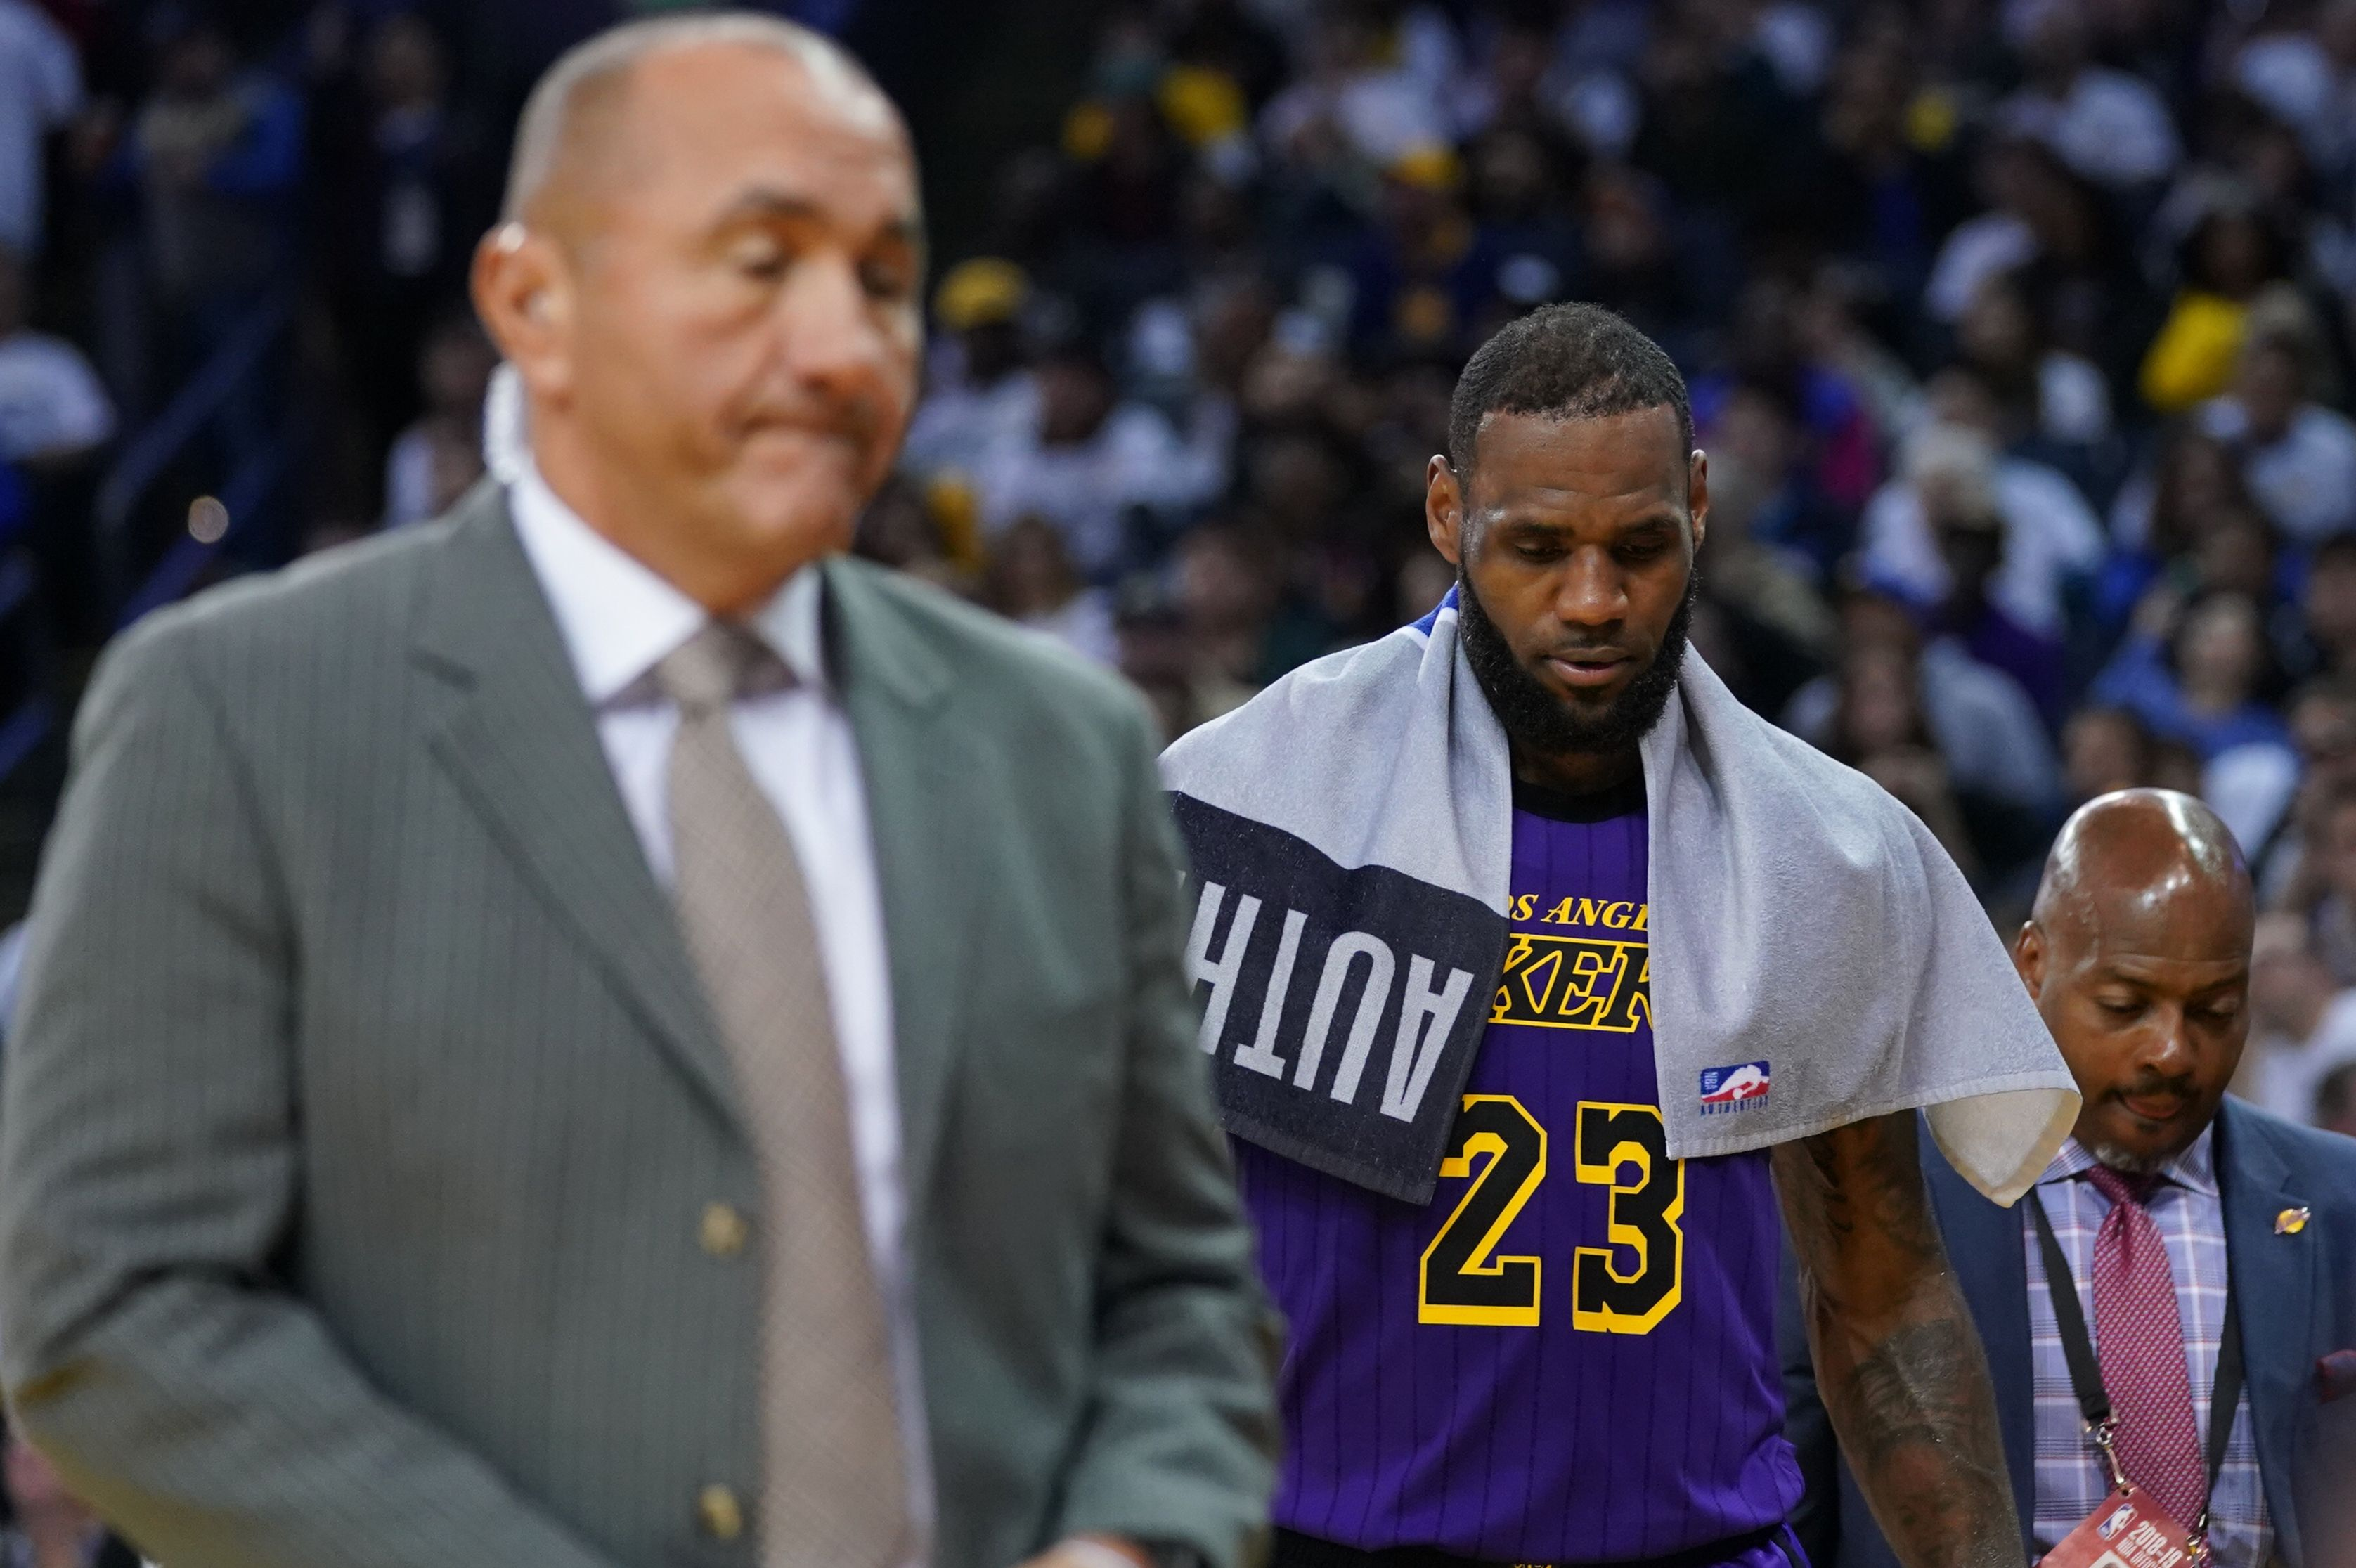 Opinion: Without LeBron James, the Los Angeles Lakers' once-hopeful season is now in danger